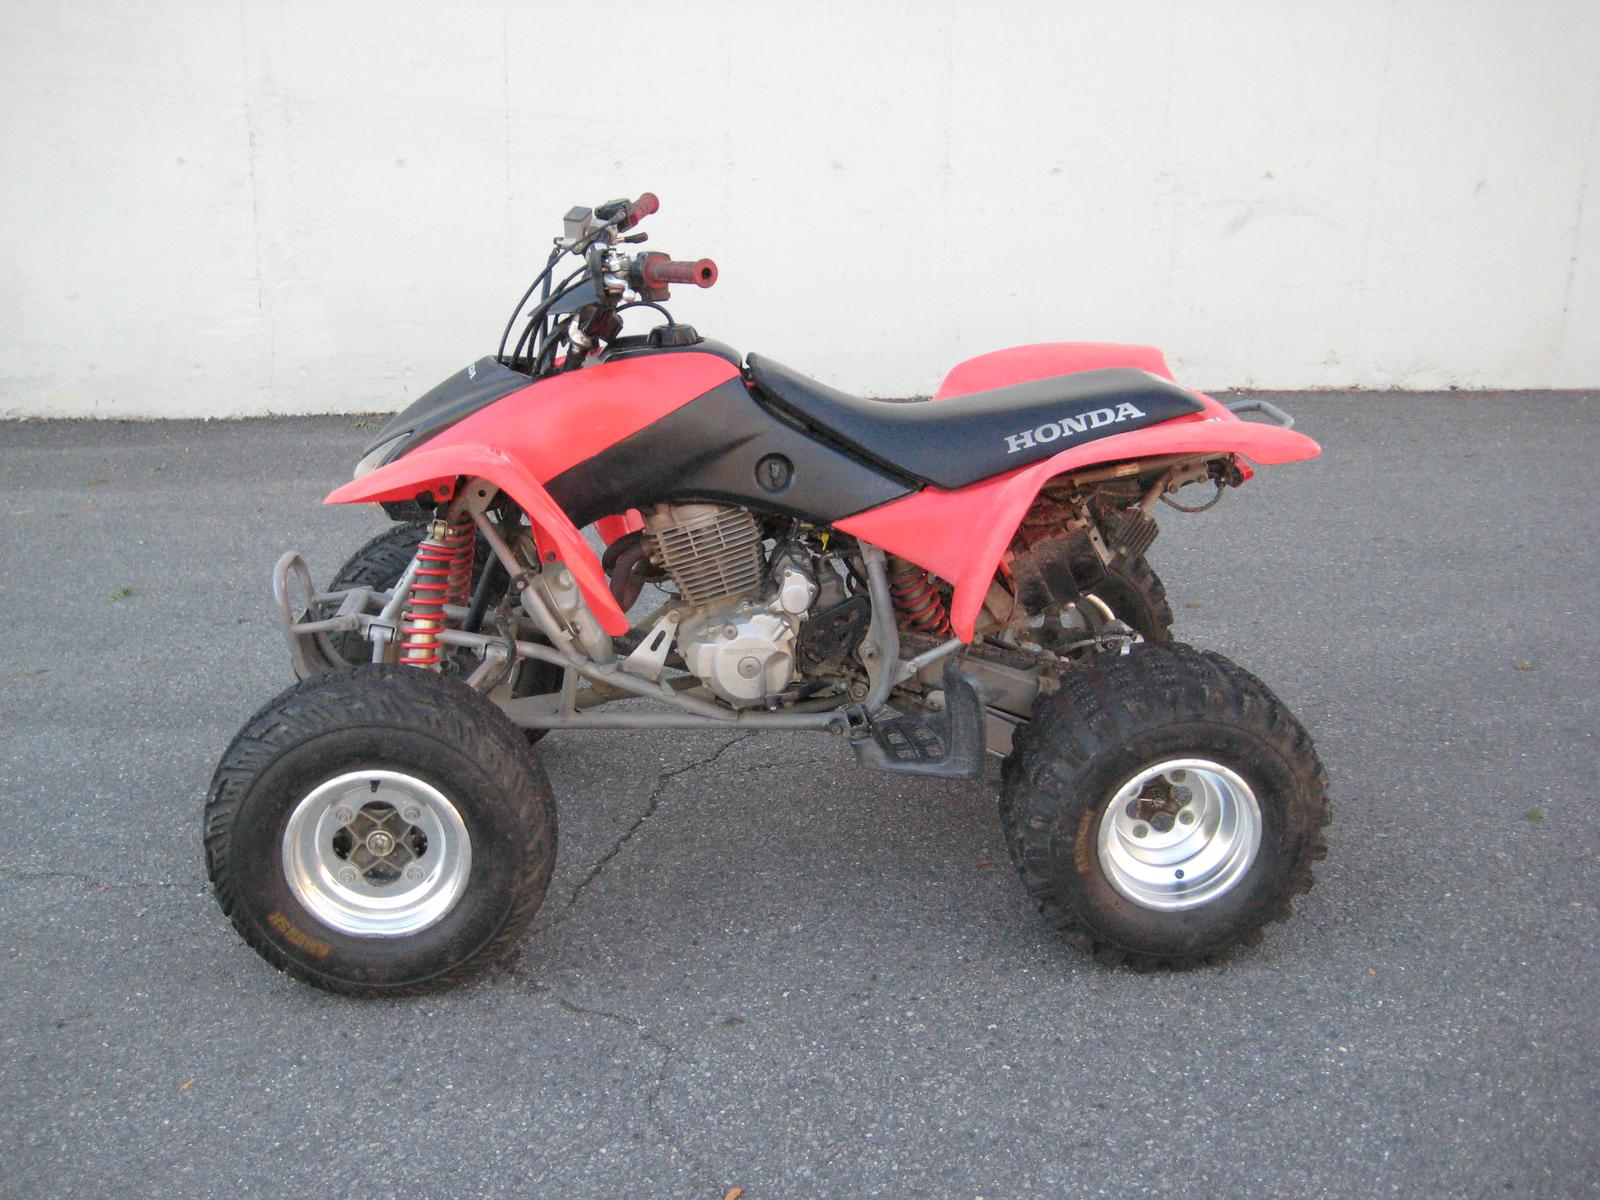 2007 Honda Trx 400ex For Sale In Manchester Nh Naults Powersports Ignition Wiring Diagram Img 1741